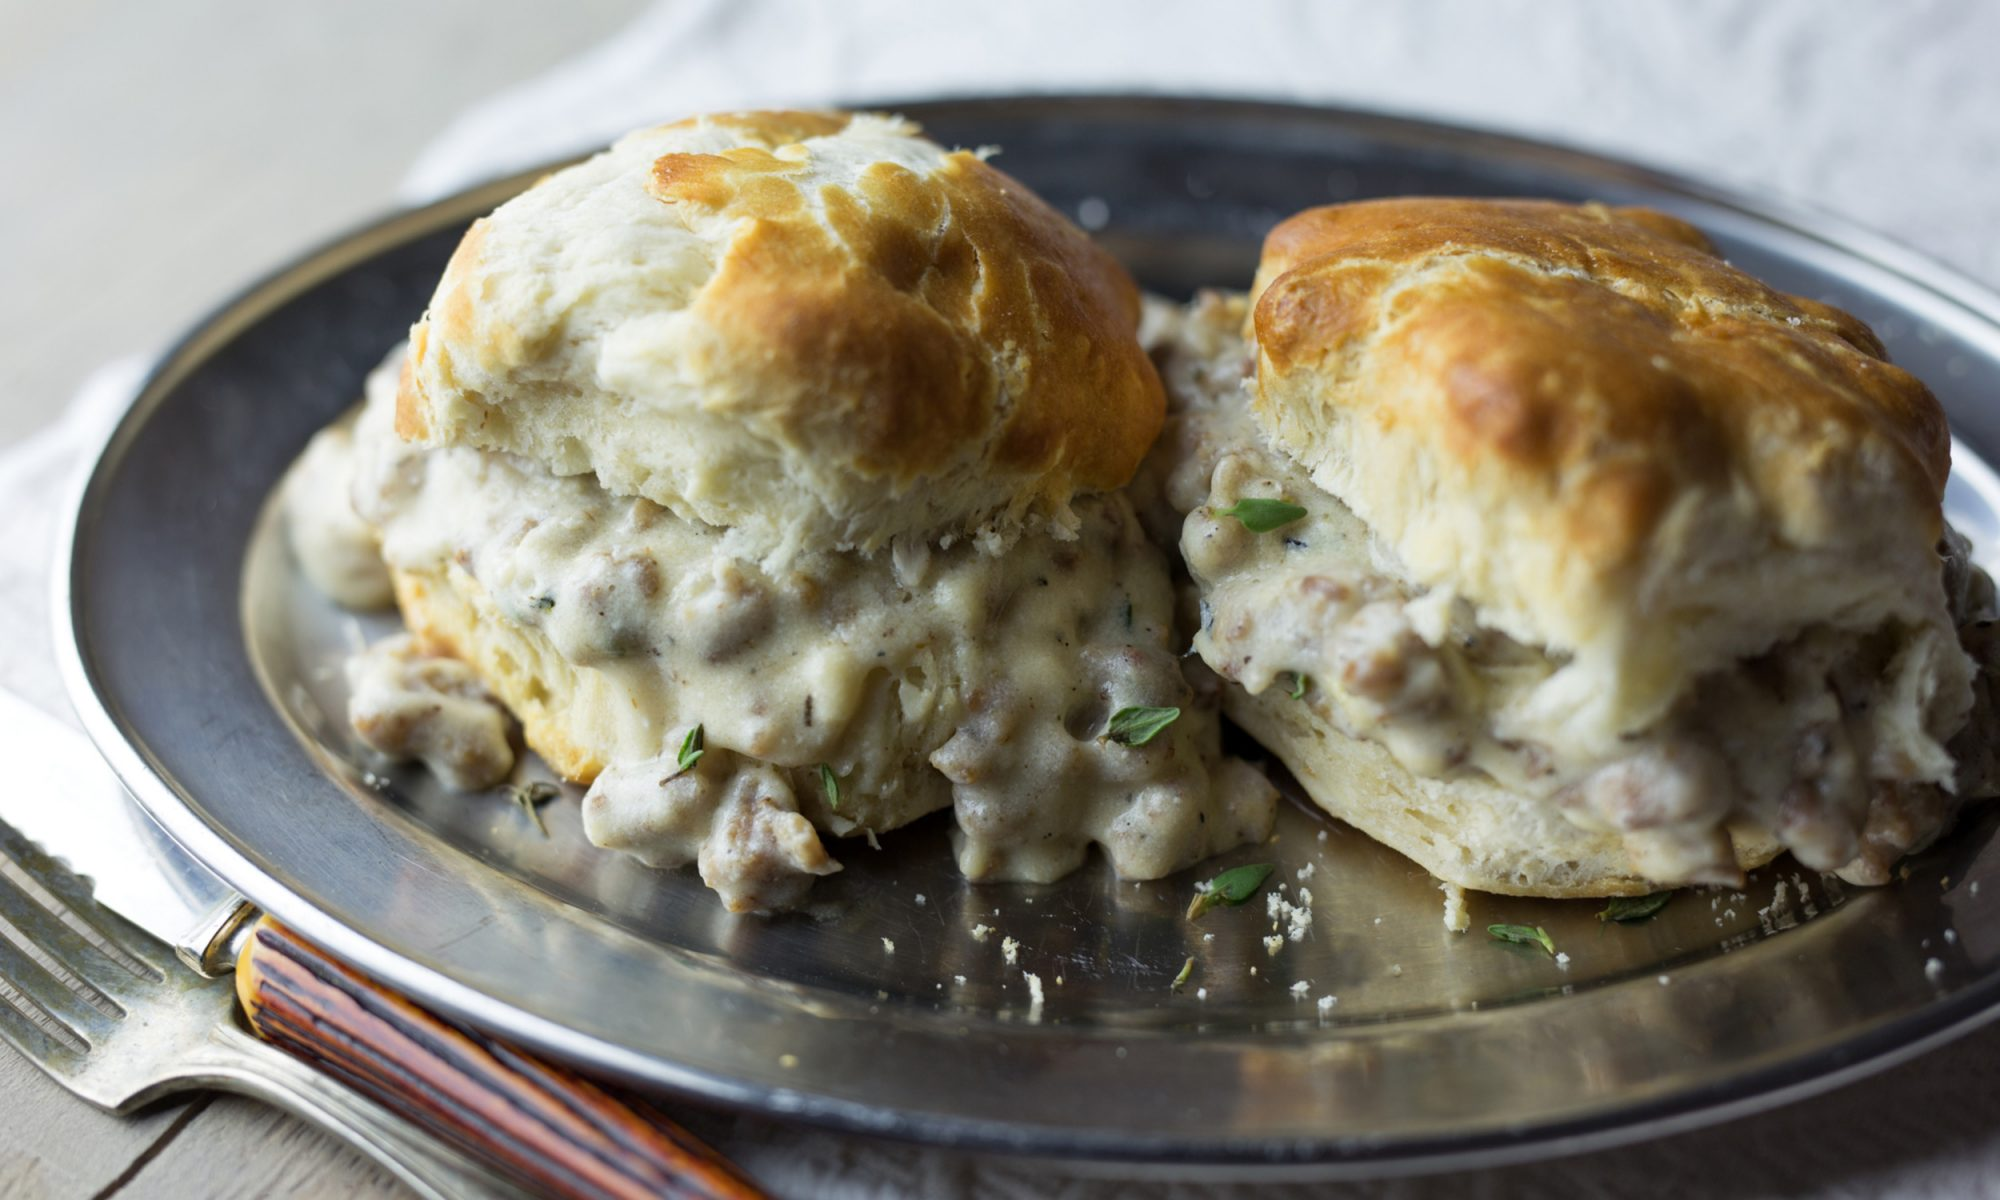 EC:  assets%2Fmessage-editor%2F1463153516599-biscuits-gravy-getty